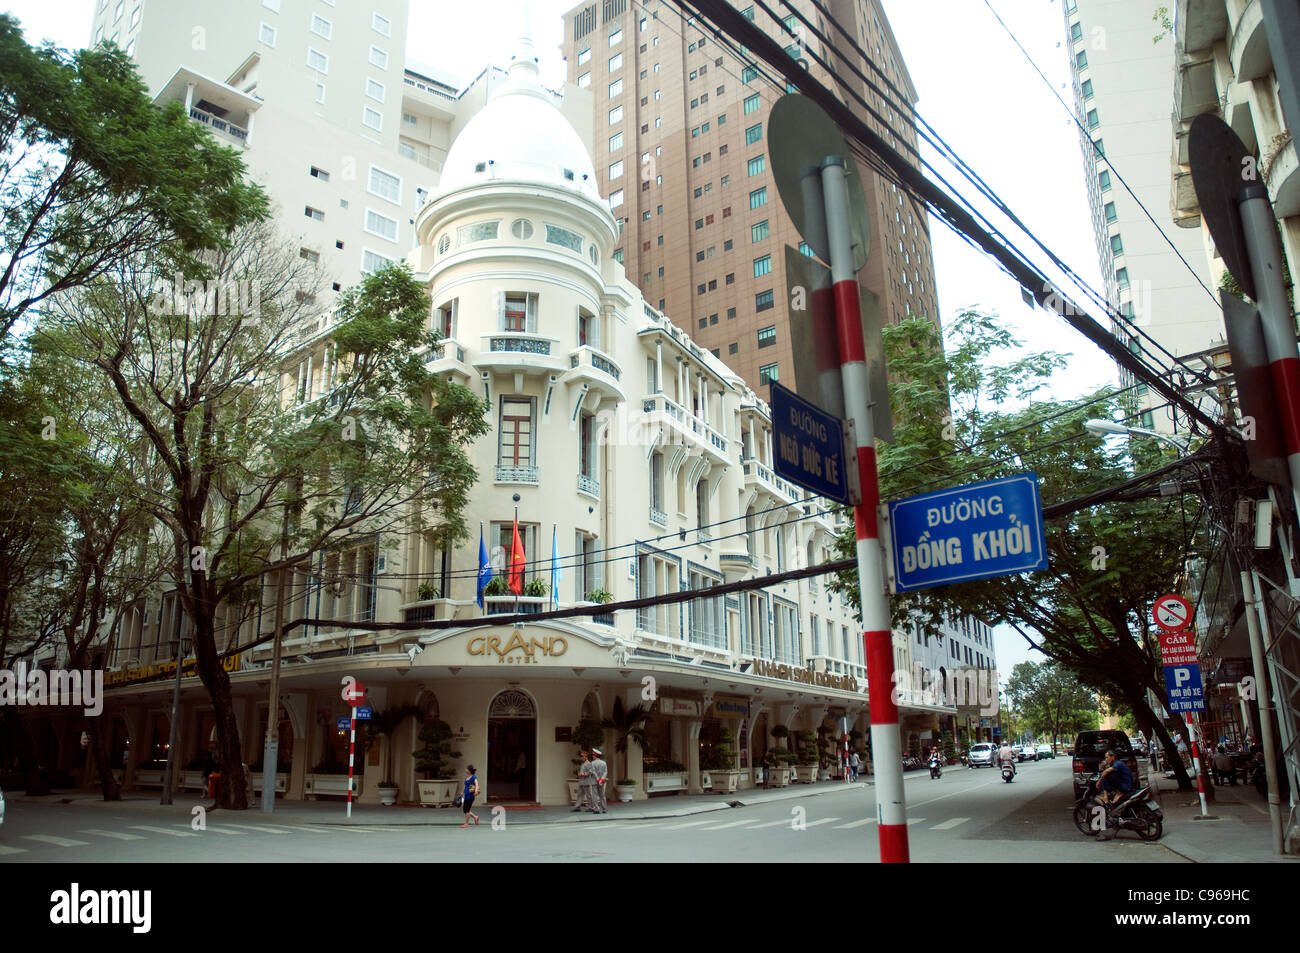 In Saigon, a gleaming refurbished Grand Hotel maintains its classic beauty as investment booms all around Stock Photo